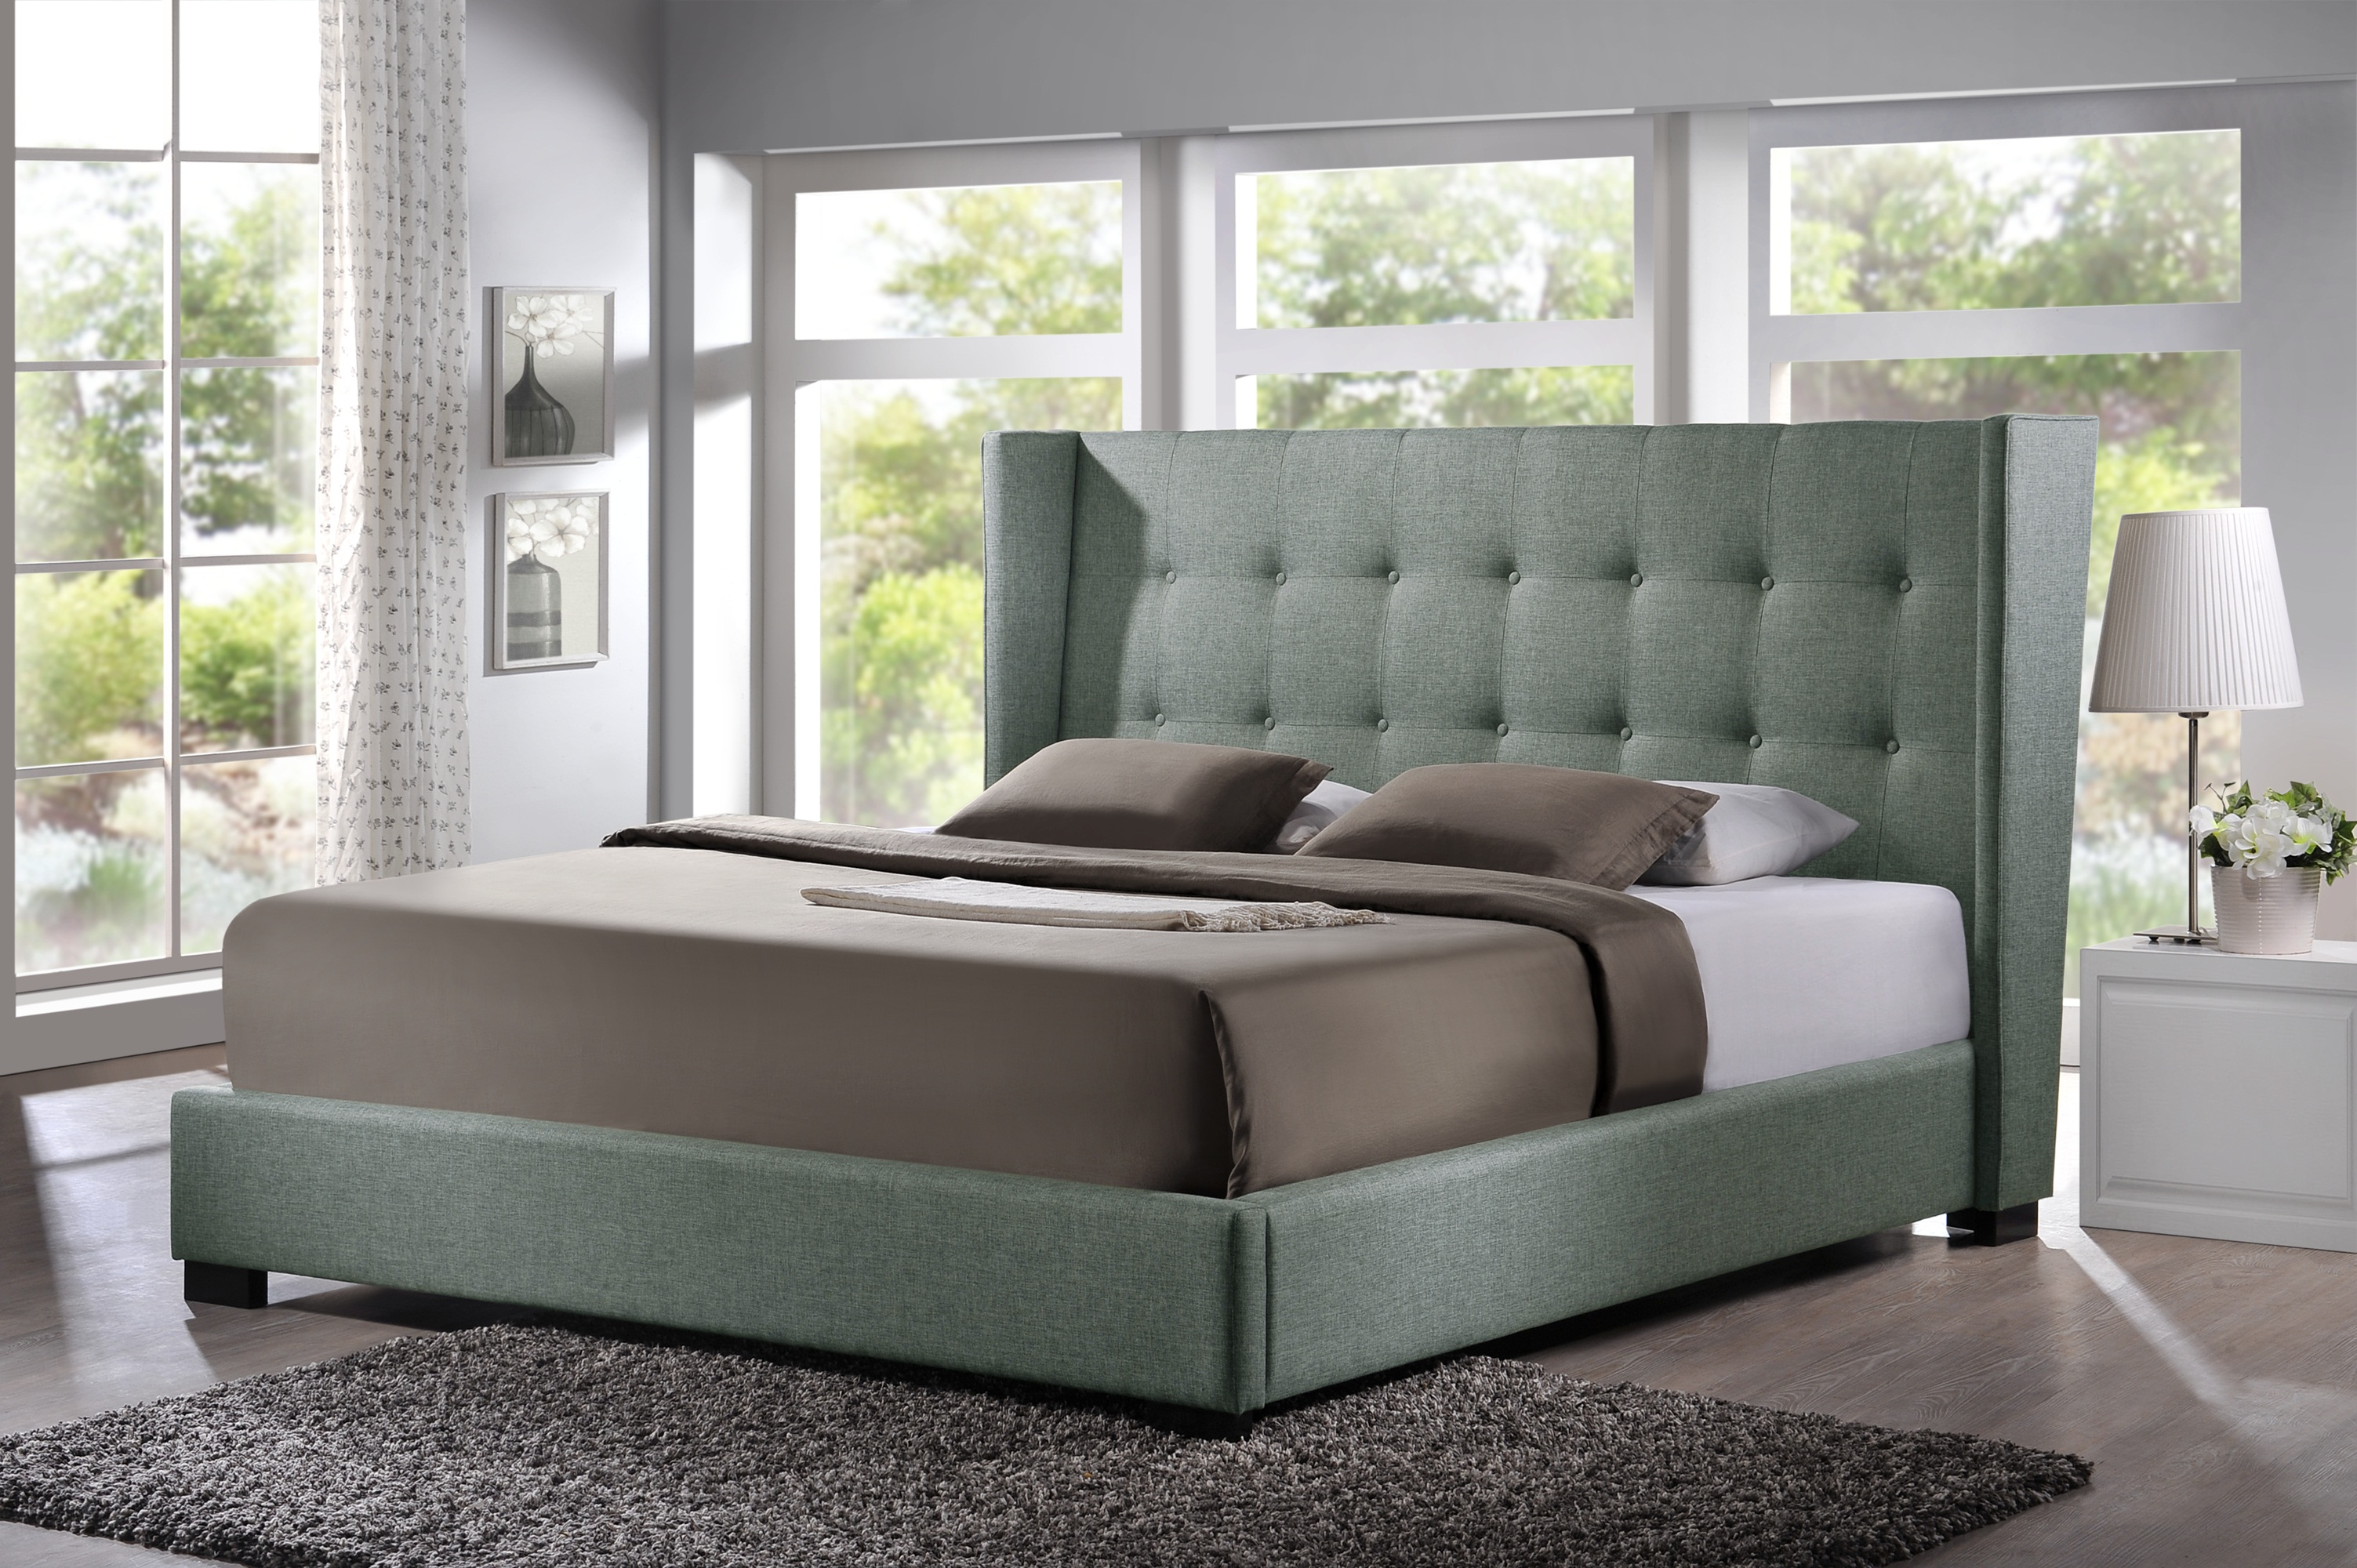 Baxton Studio Favela Gray Linen Modern Bed with Upholstered Headboard - King  Size